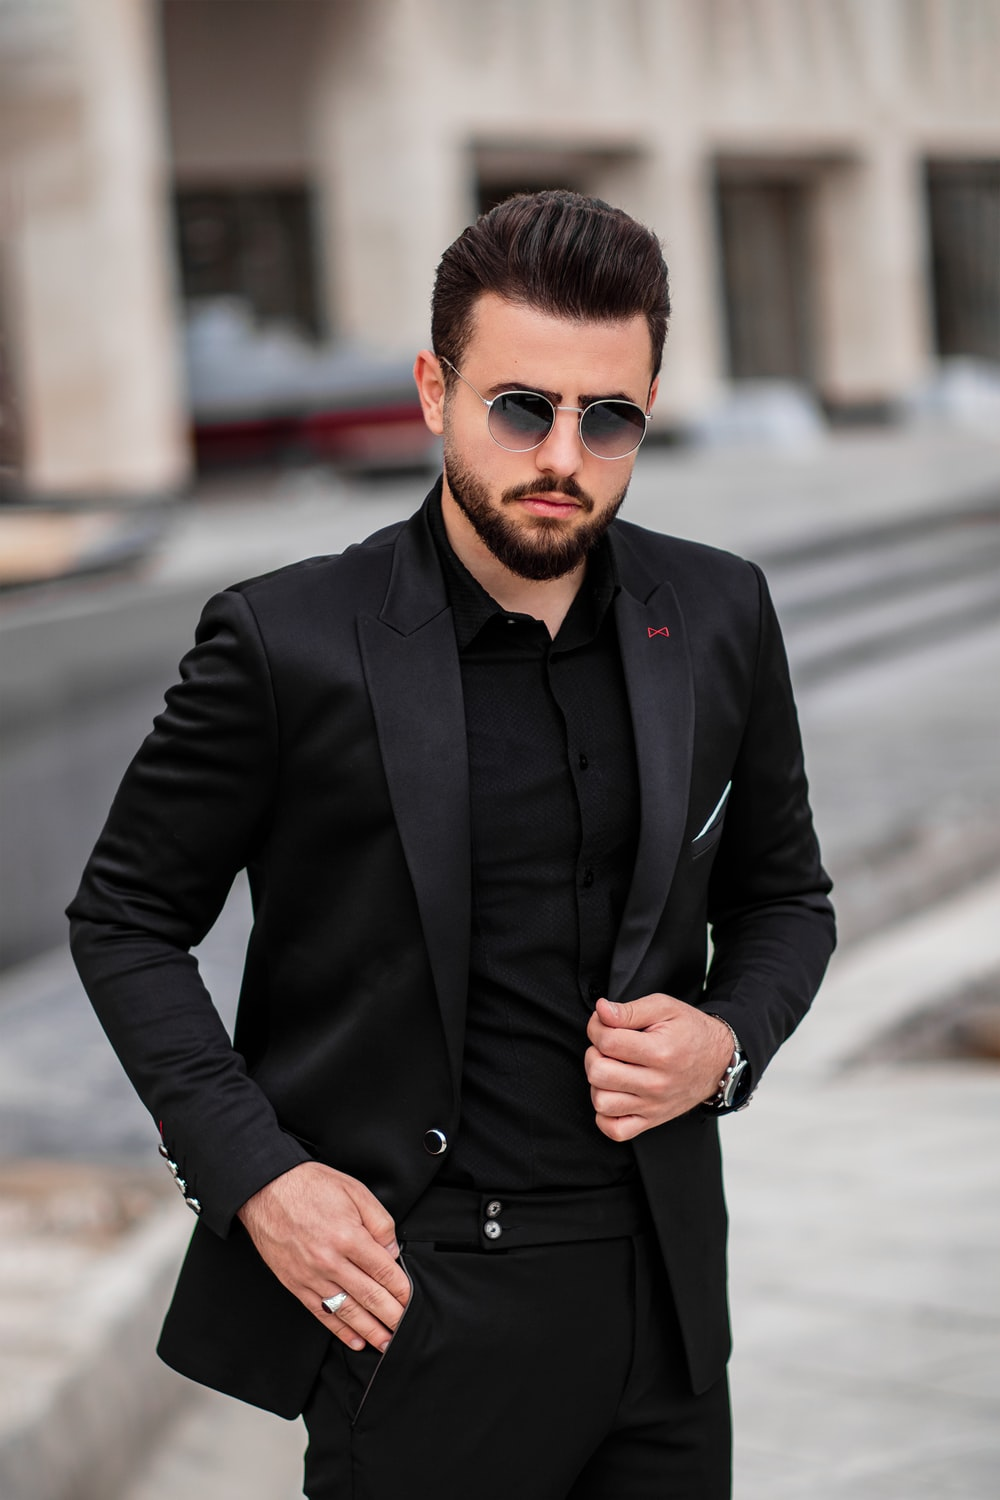 man in black suit jacket and black sunglasses